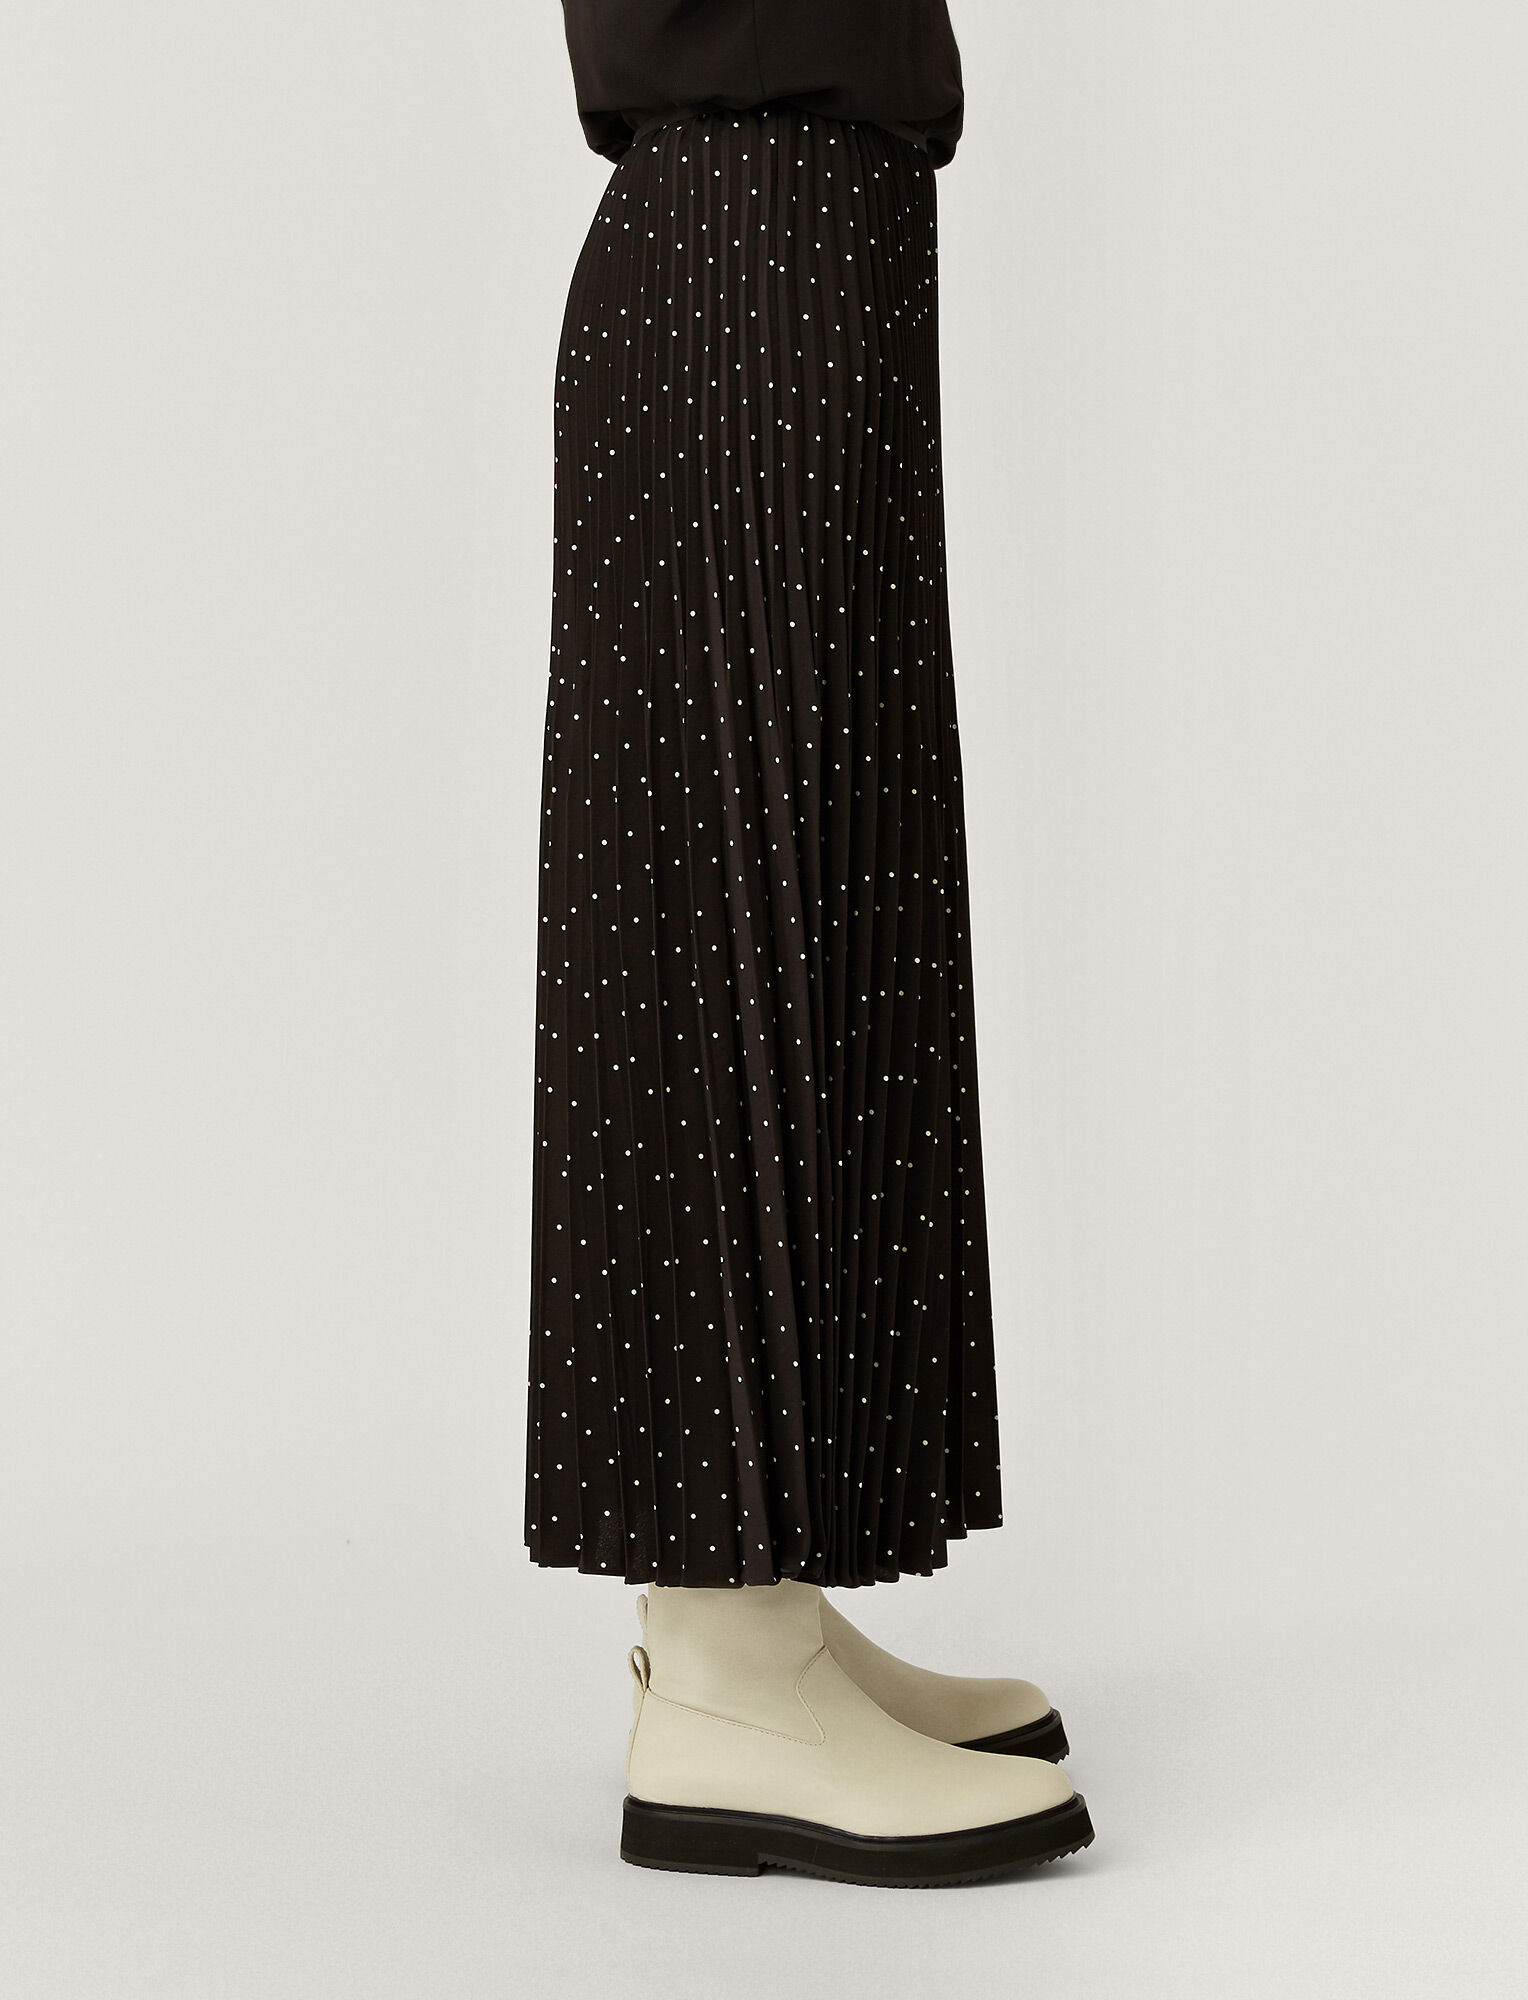 Joseph, Silk Polkadot Sorence Skirt, in BLACK/IVORY